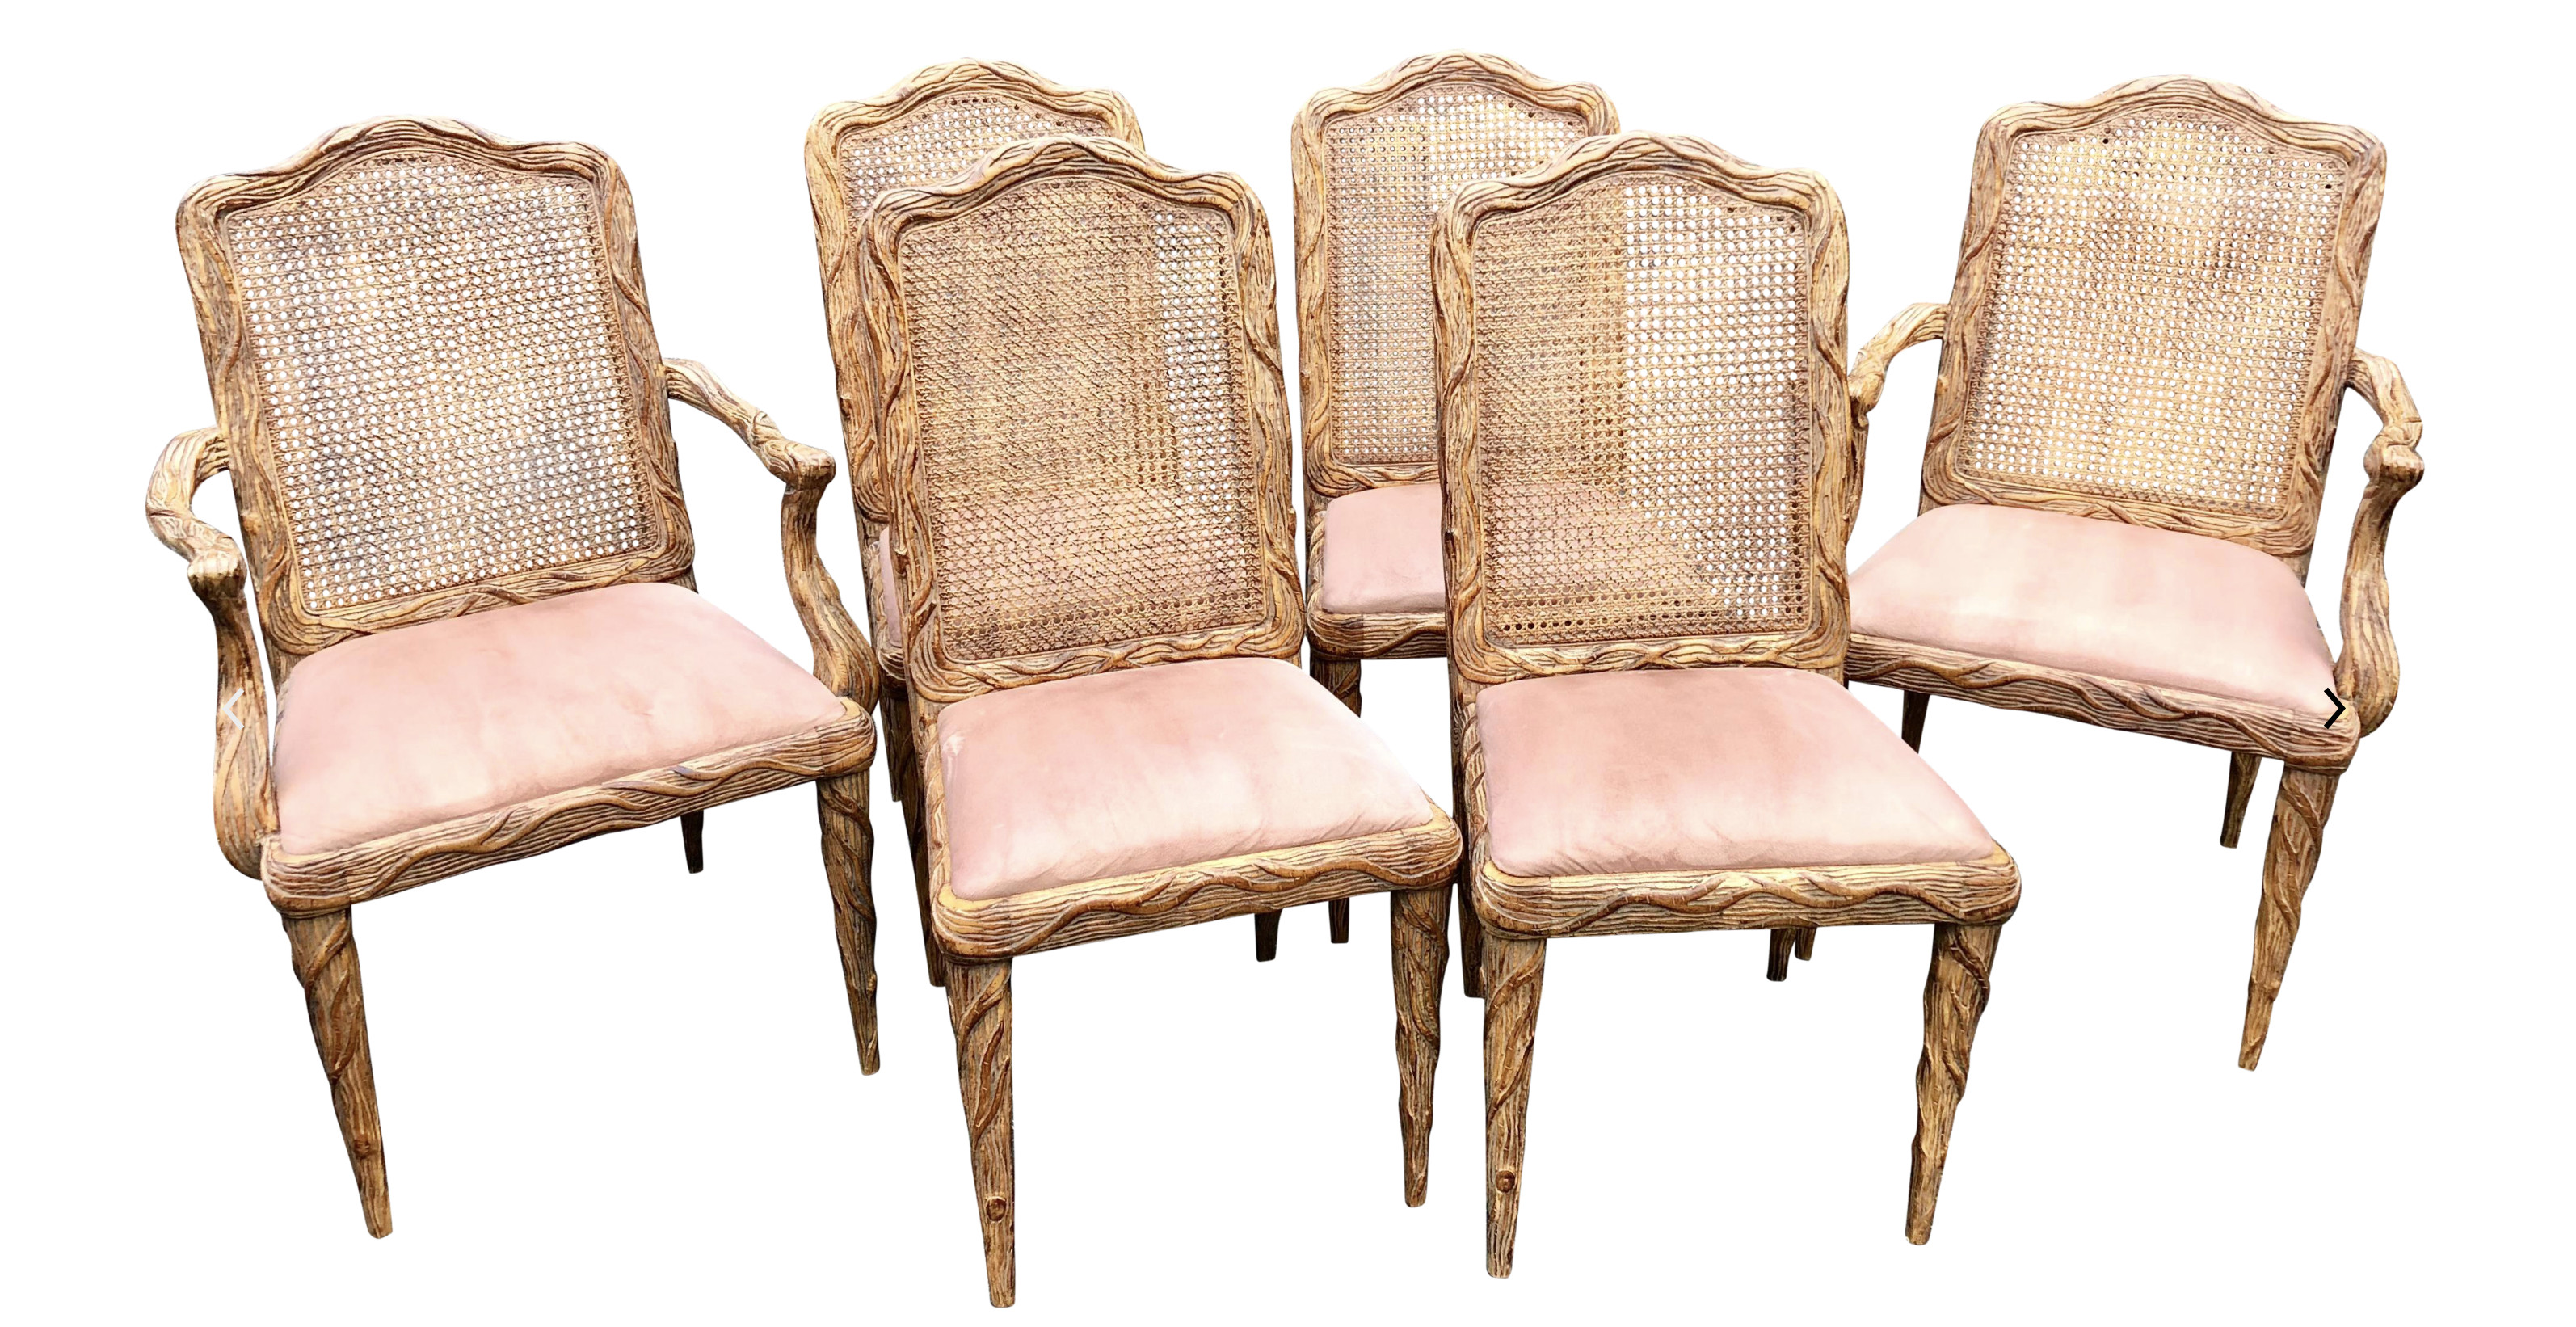 Vintage French Faux Bois Dining Chairs